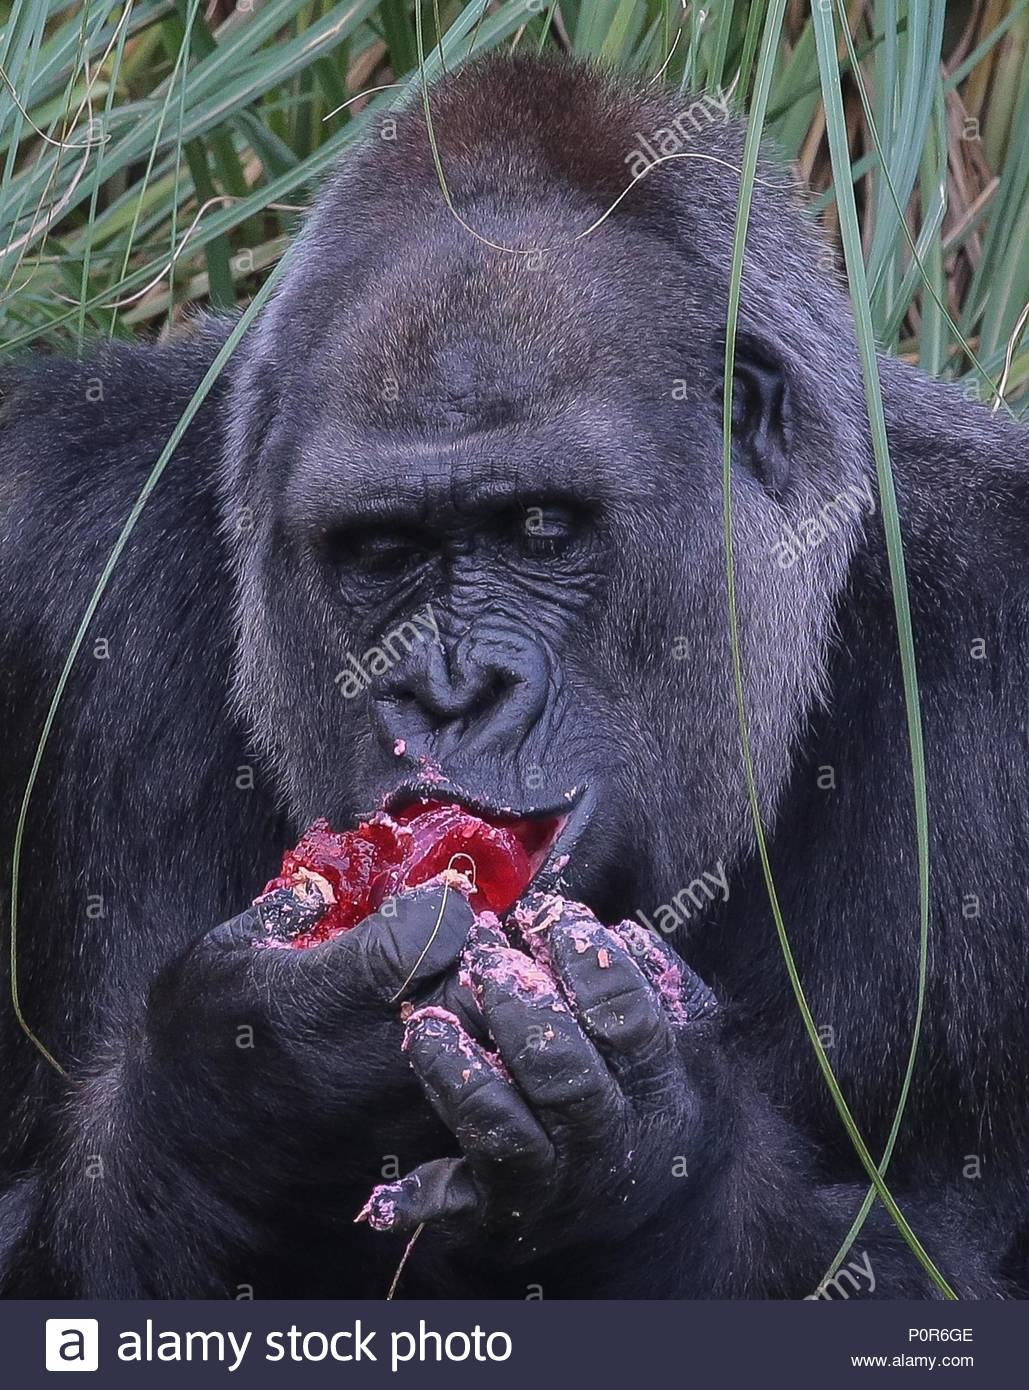 London Zoo Gorilla Zaire Celebrates Her 40th Birthday The 165 Stone Western Lowland Marked Milestone With A Cake Made By Runner Up